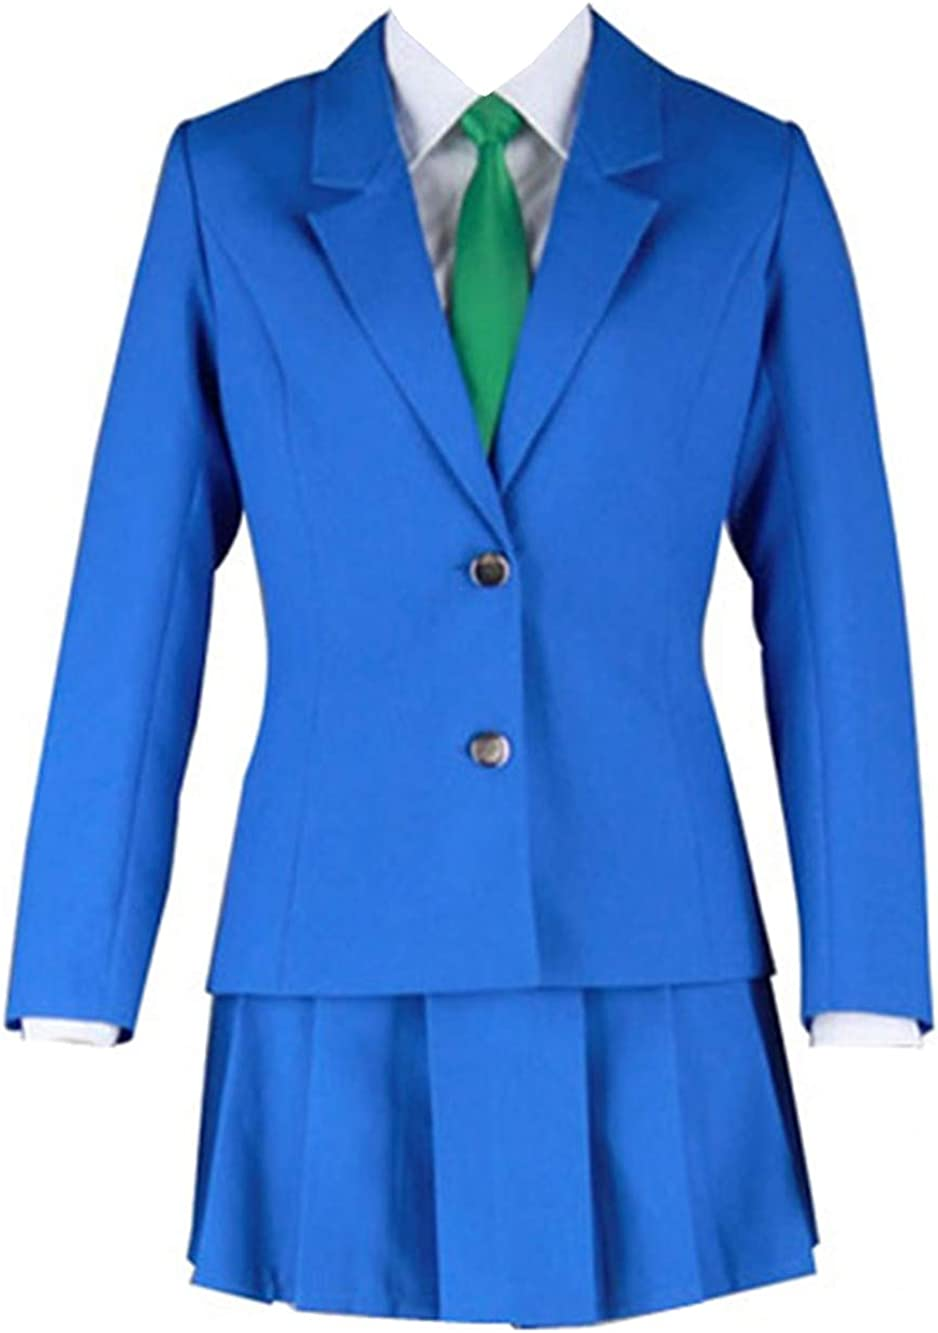 Detective Conan,Case Closed Rachel Moore Cosplay Costume Outfit Full Set+Tie